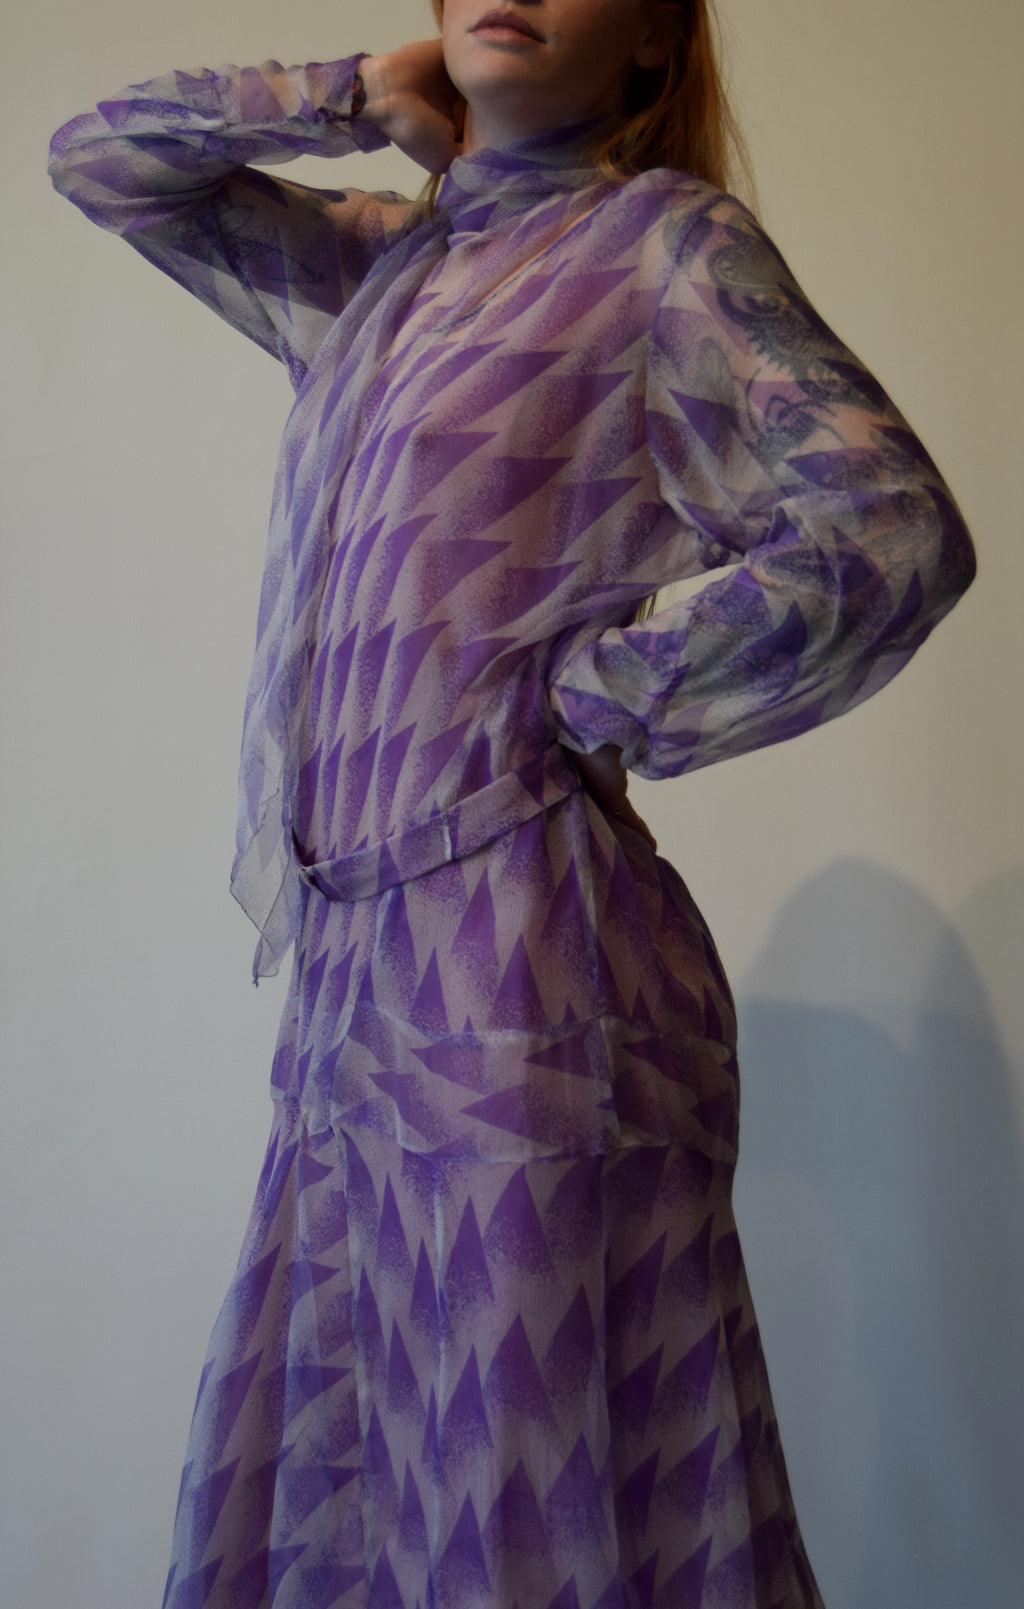 Vintage 1920's Art Deco Purple Patterned Silk Dress